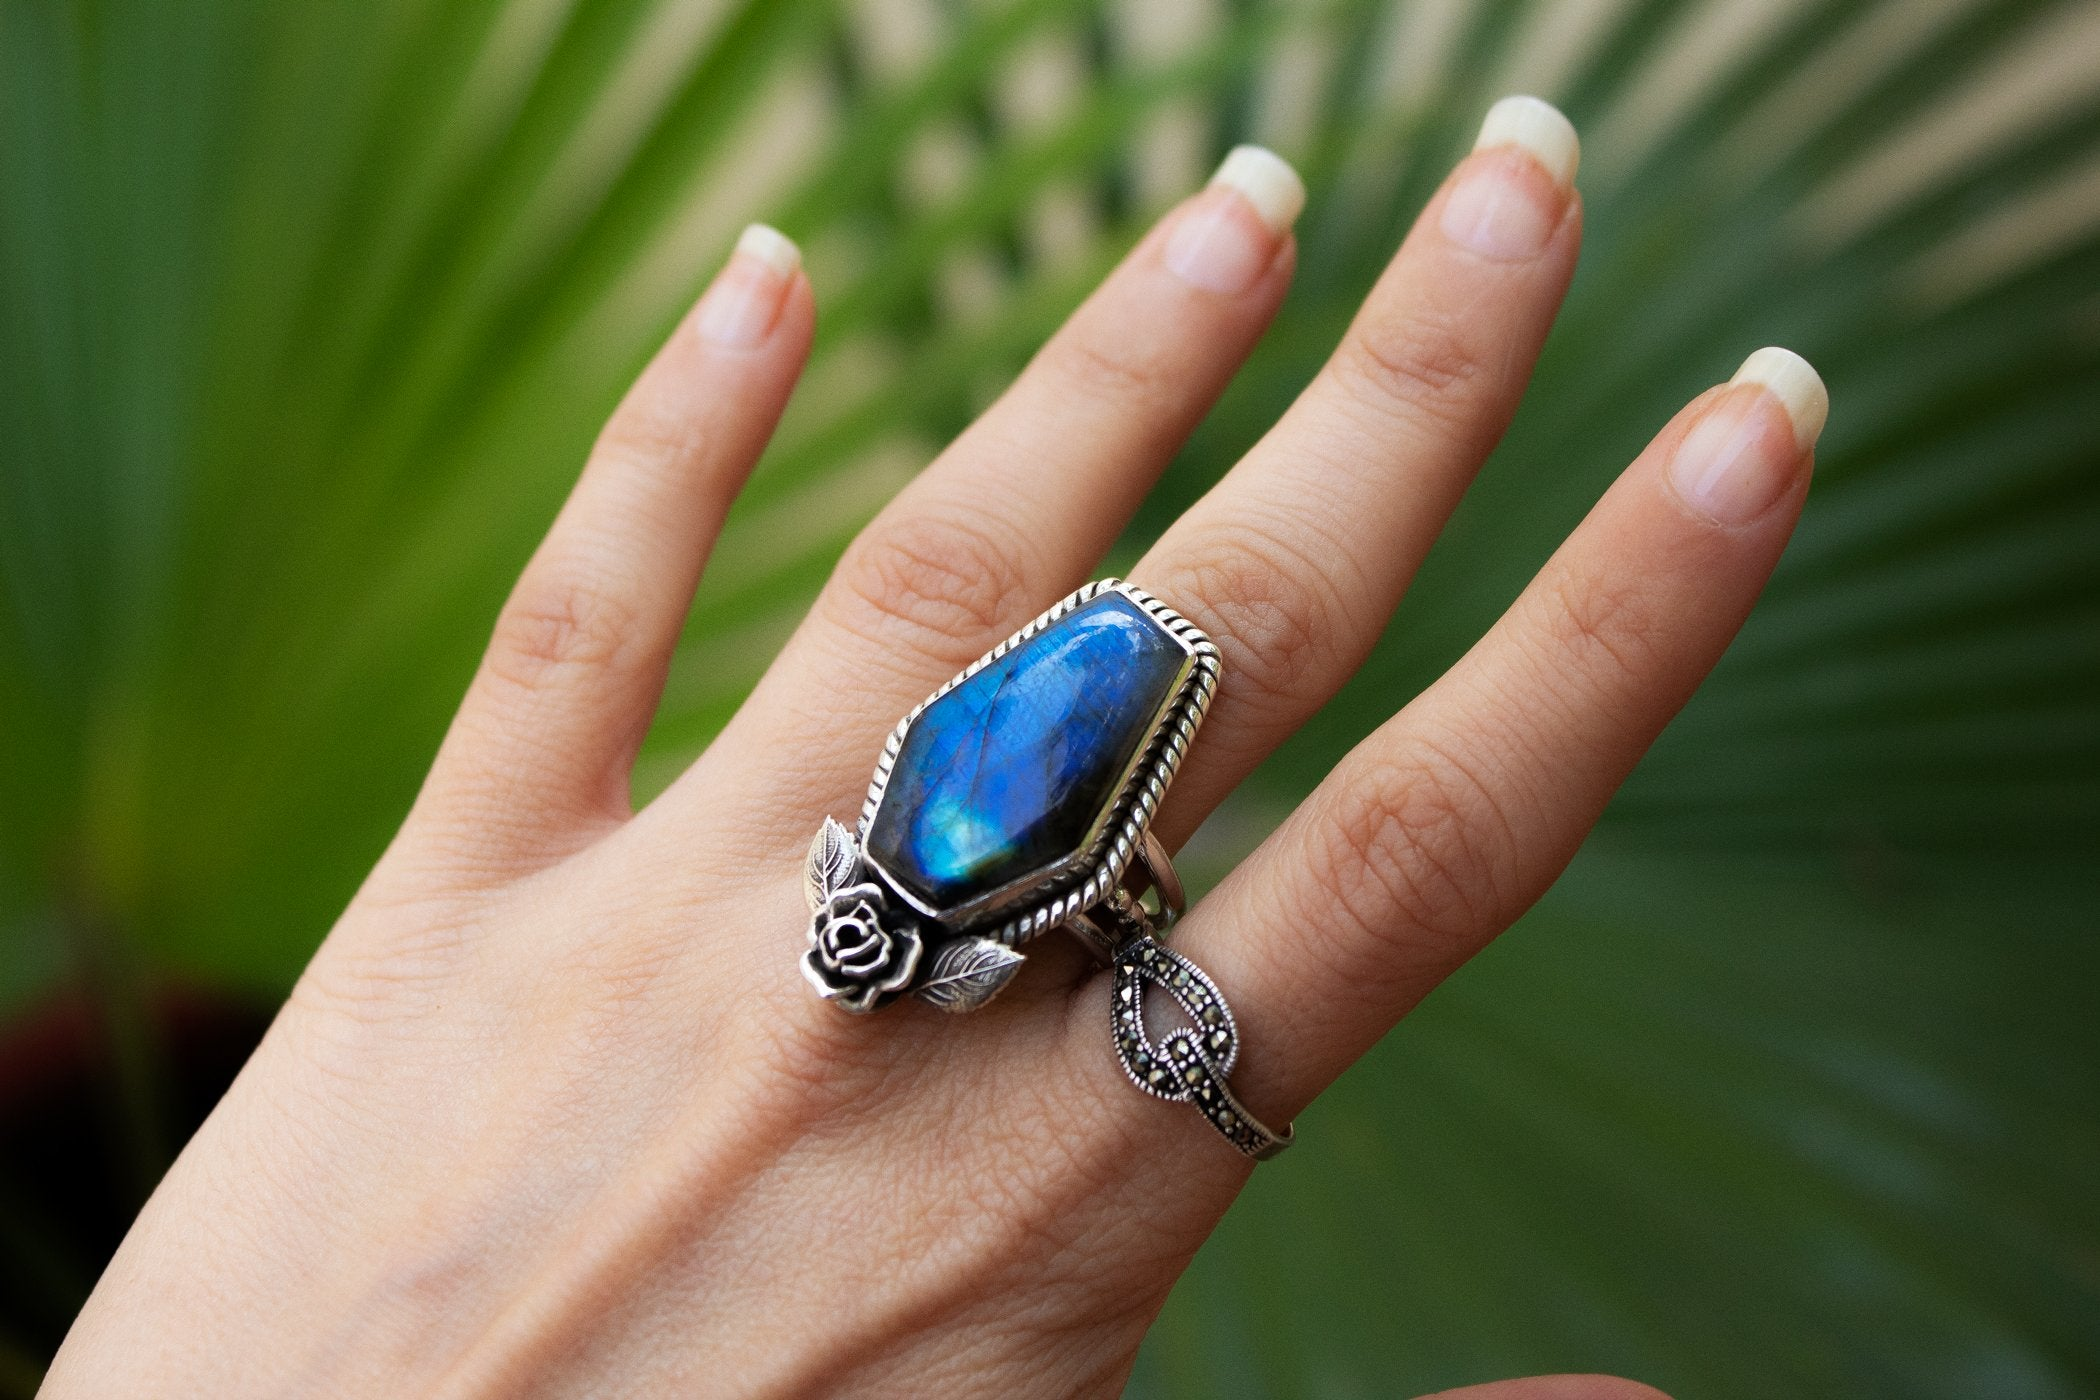 Handmade Blue Flash Labradorite Floral Coffin Ring AR-2039 - Its Ambra